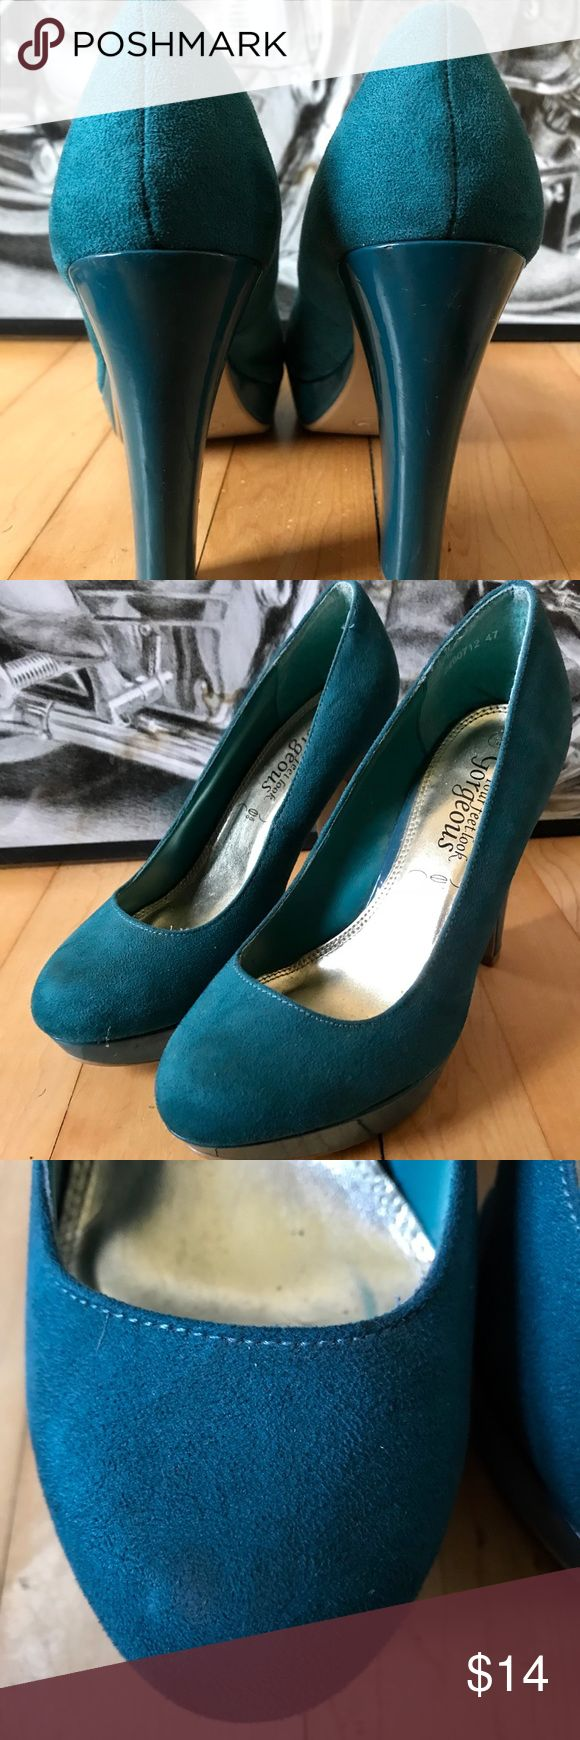 Teal High Heels Purchased these in London a few years ago and they're the perfect pop of color to add to a variety of ensembles. Only worn a few times to weddings and parties. 4 inch heel, 1 inch platform, with a suede-type finish. Just a minor spot on the right toe, but super faint (see photo). They're a size 6, but run a little narrow. Shoes Heels